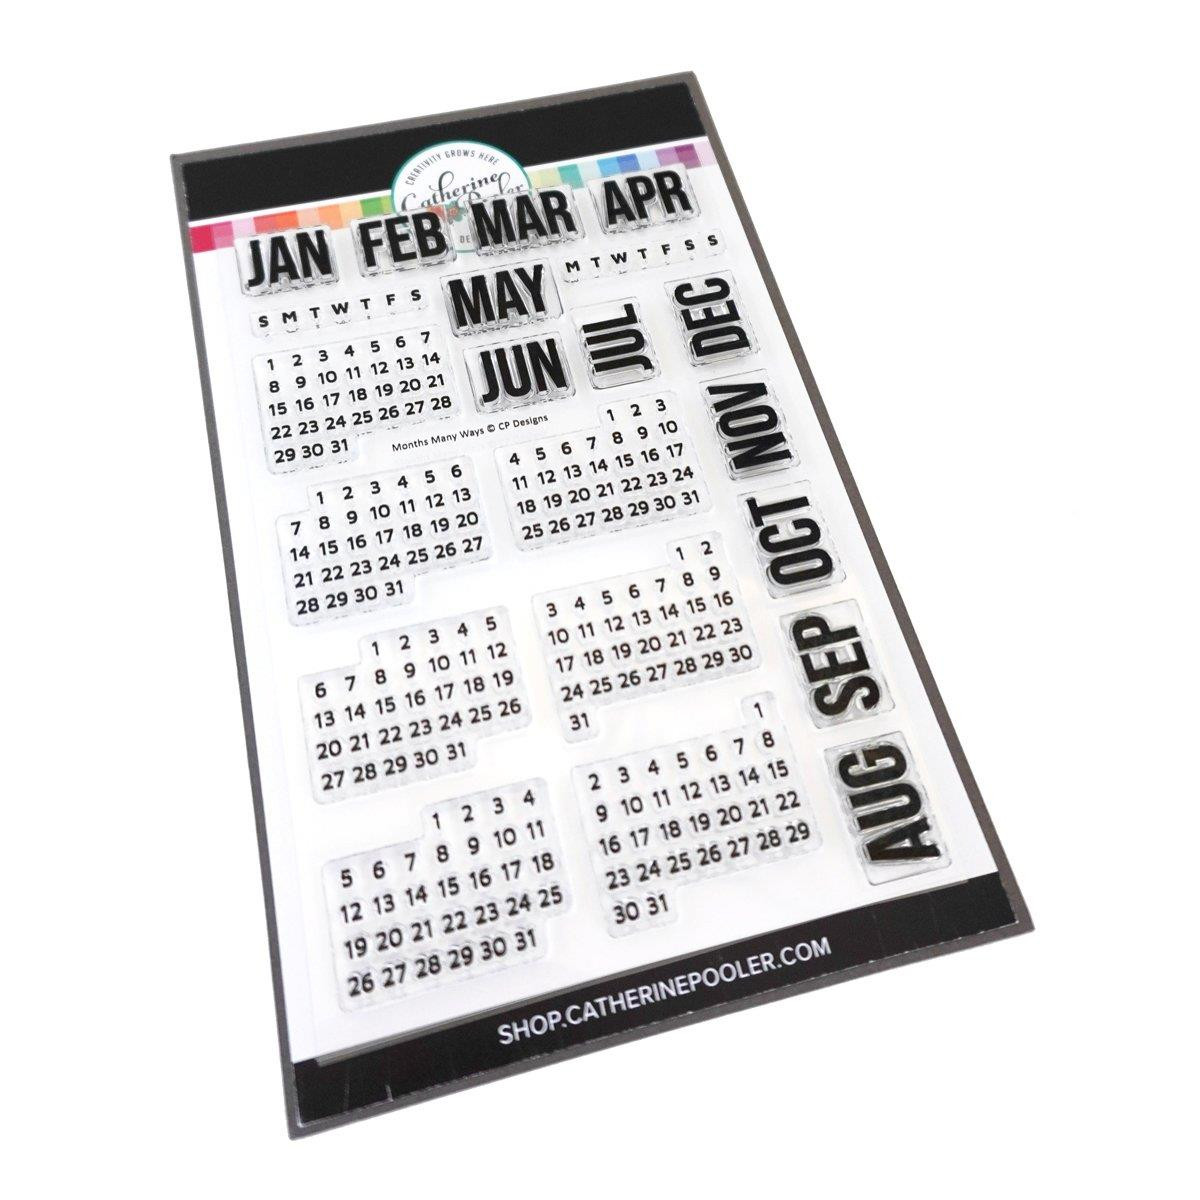 Months Many Ways, Catherine Pooler Clear Stamps -